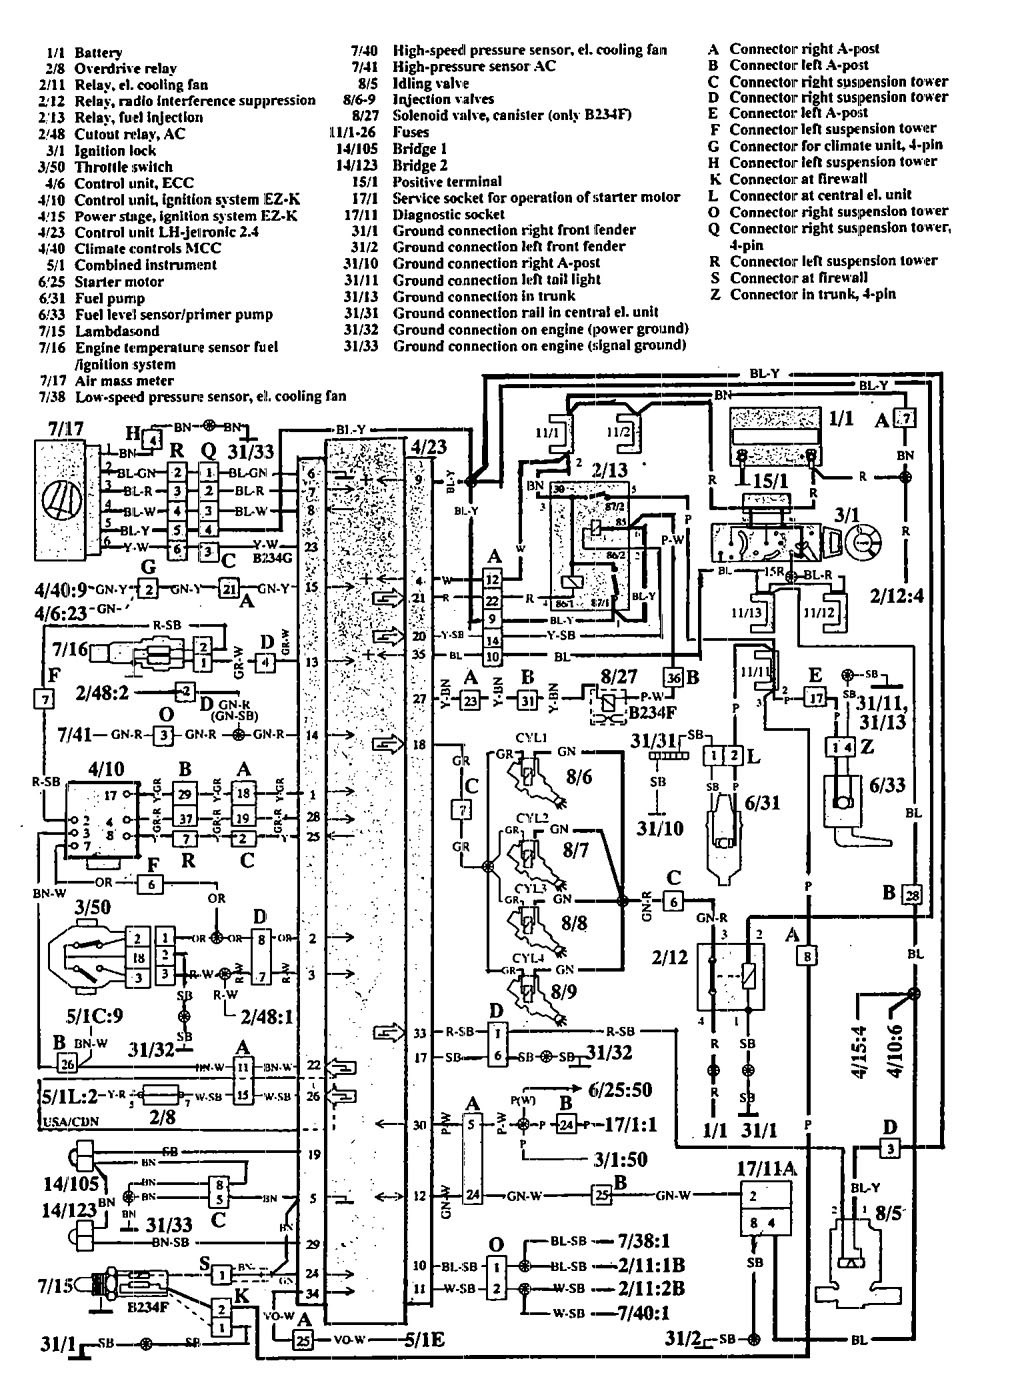 1995 lexus ls400 radio wiring diagram venn fiction vs nonfiction volvo 940 great installation of images gallery